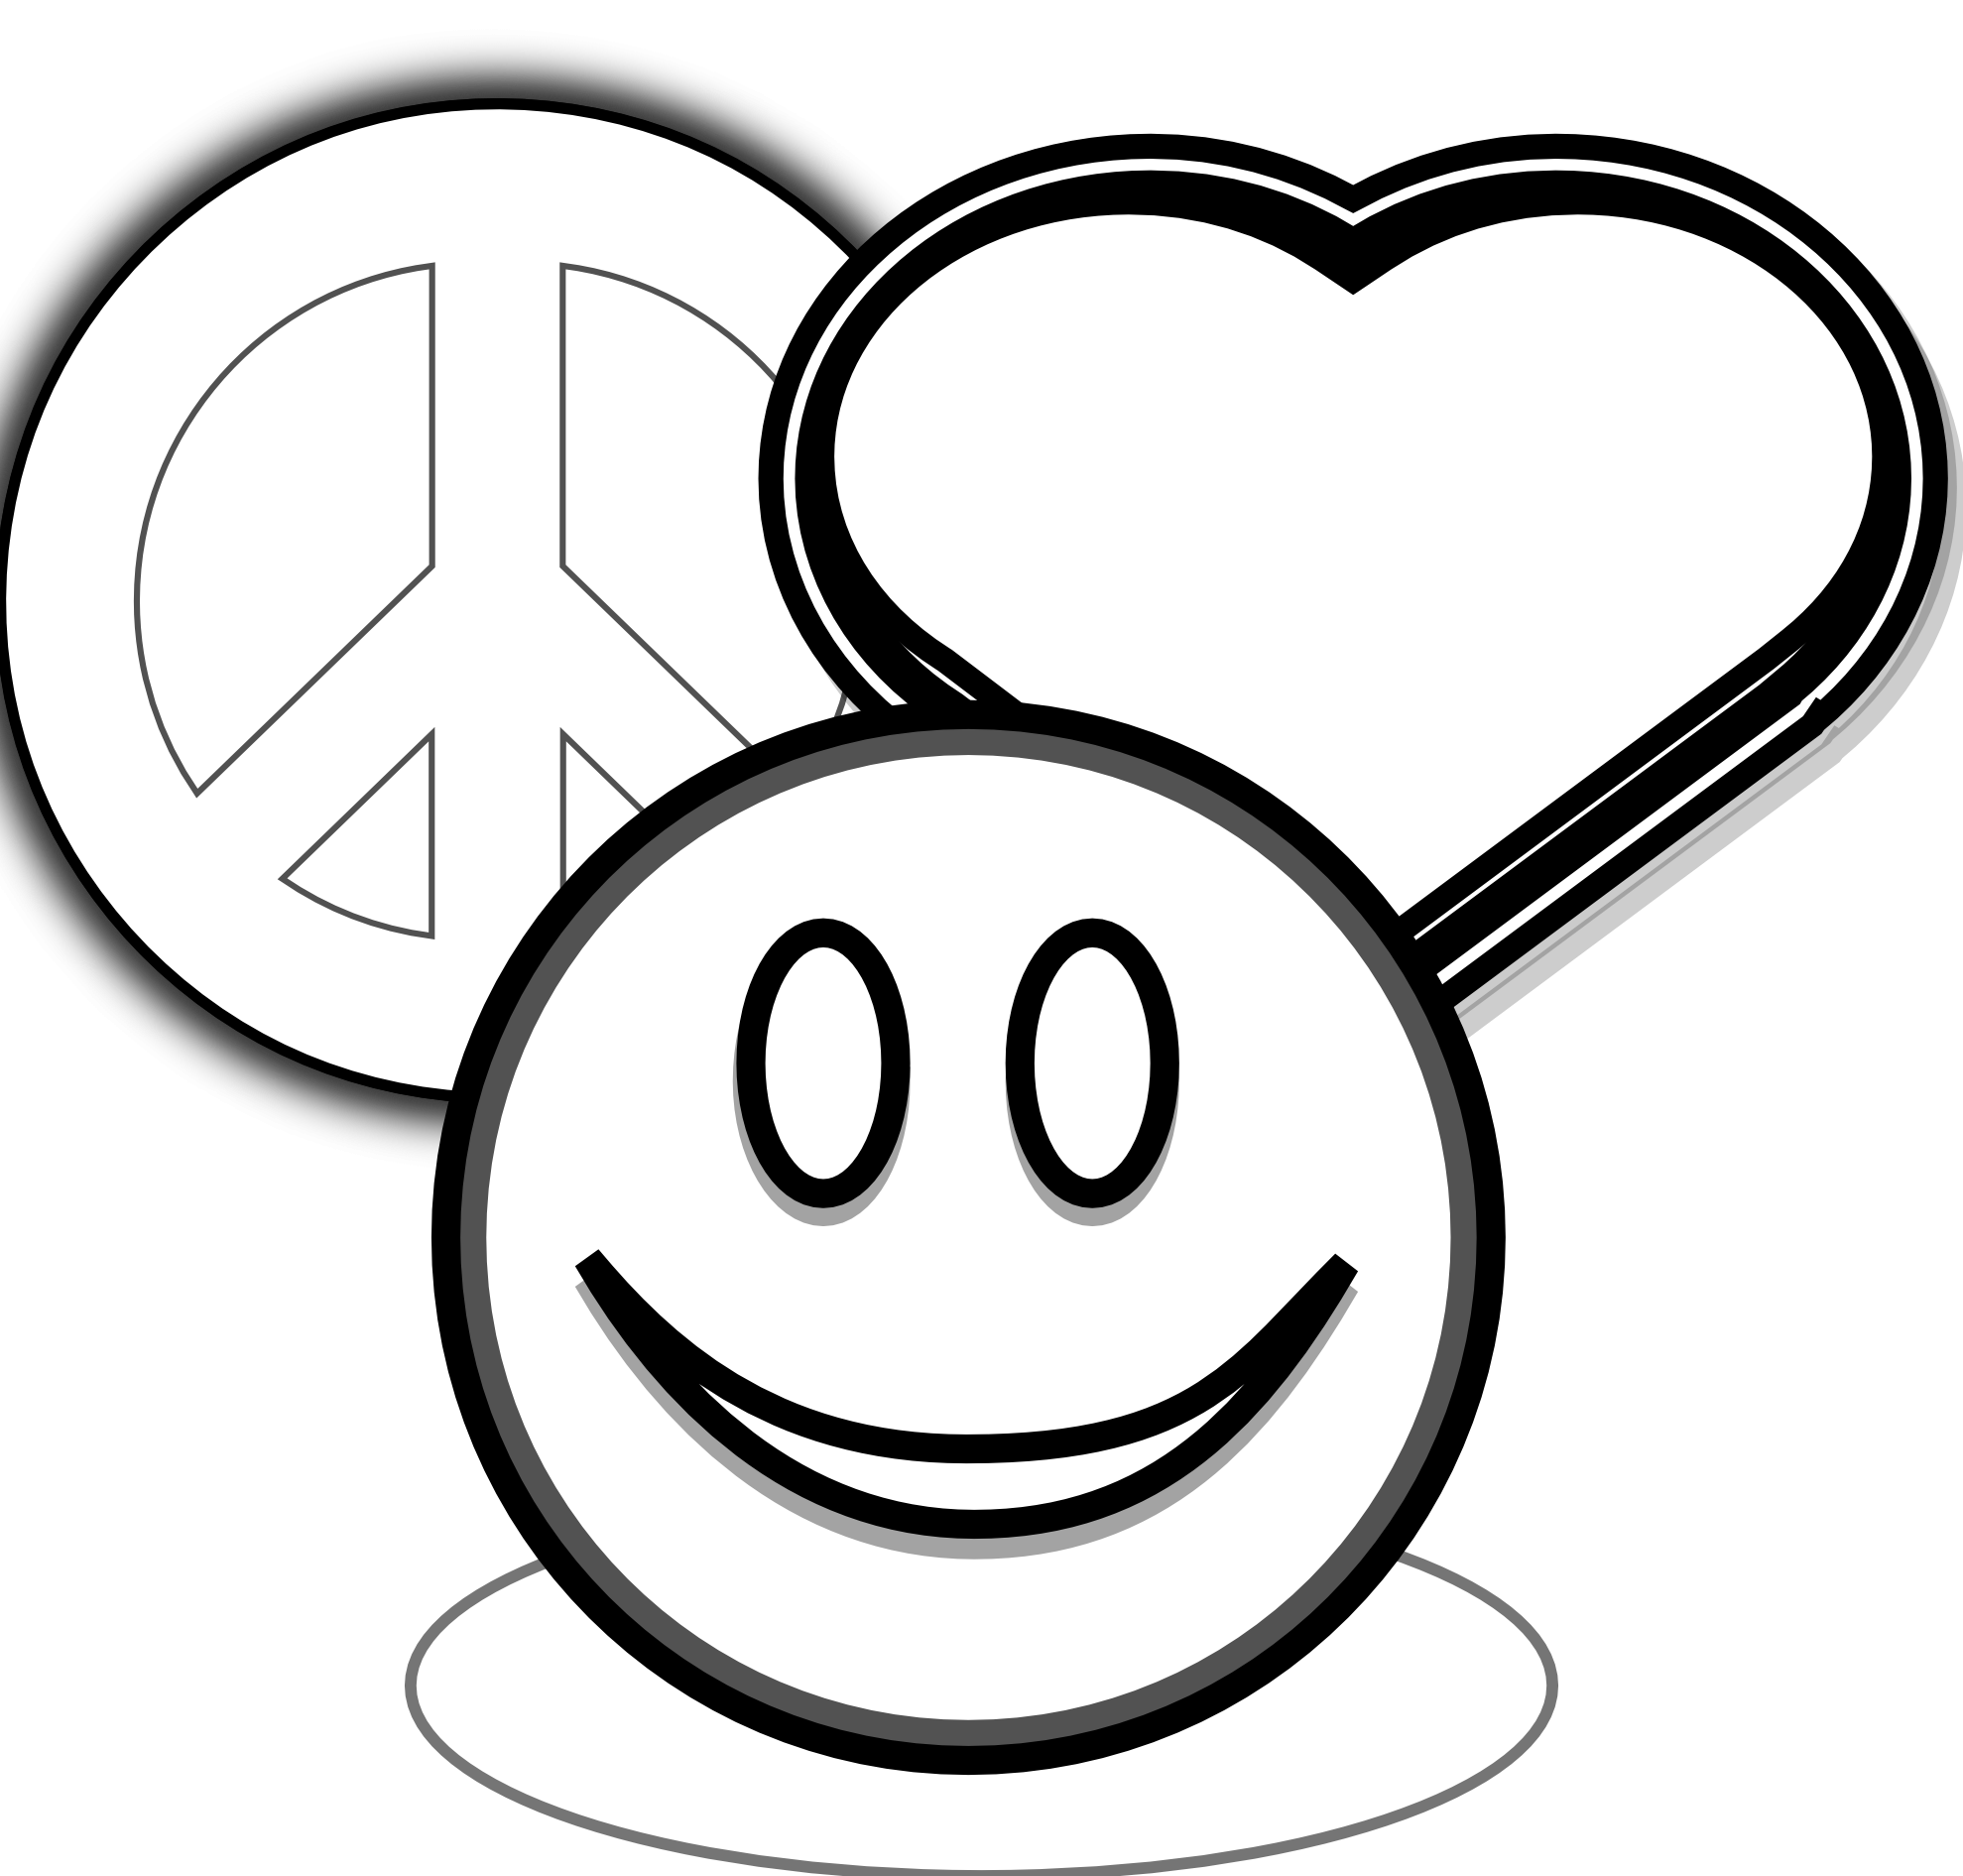 heart clipart coloring page heart frame clip art library heart coloring page clipart